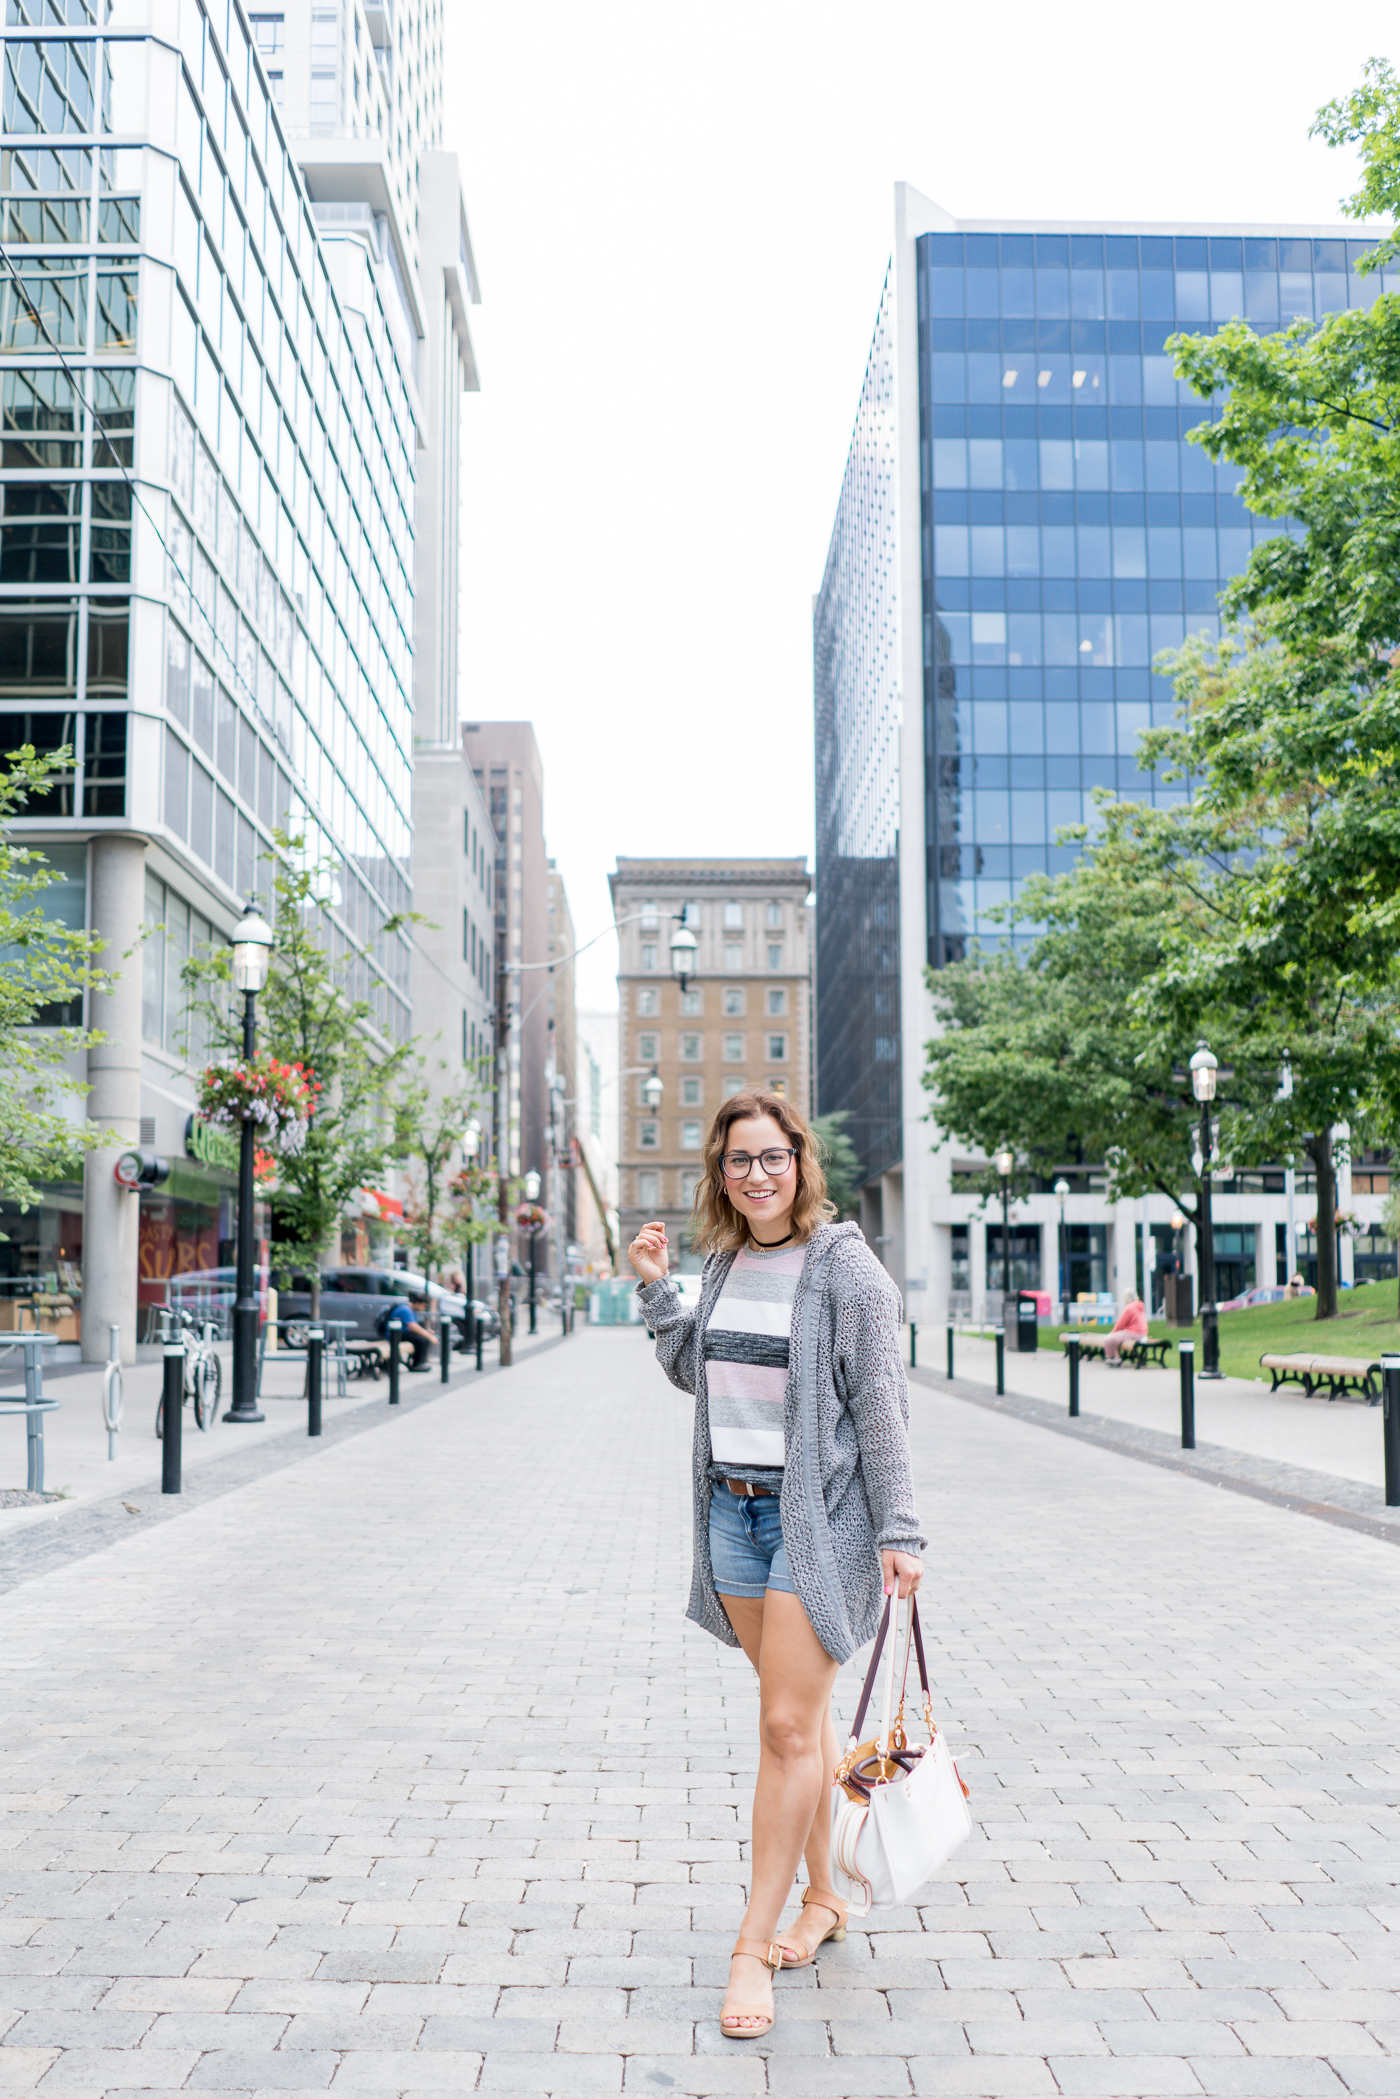 Effortless casual summer outfit, with a striped t-shirt, denim shorts from J.Crew factory and a lightweight cardigan from Artizia